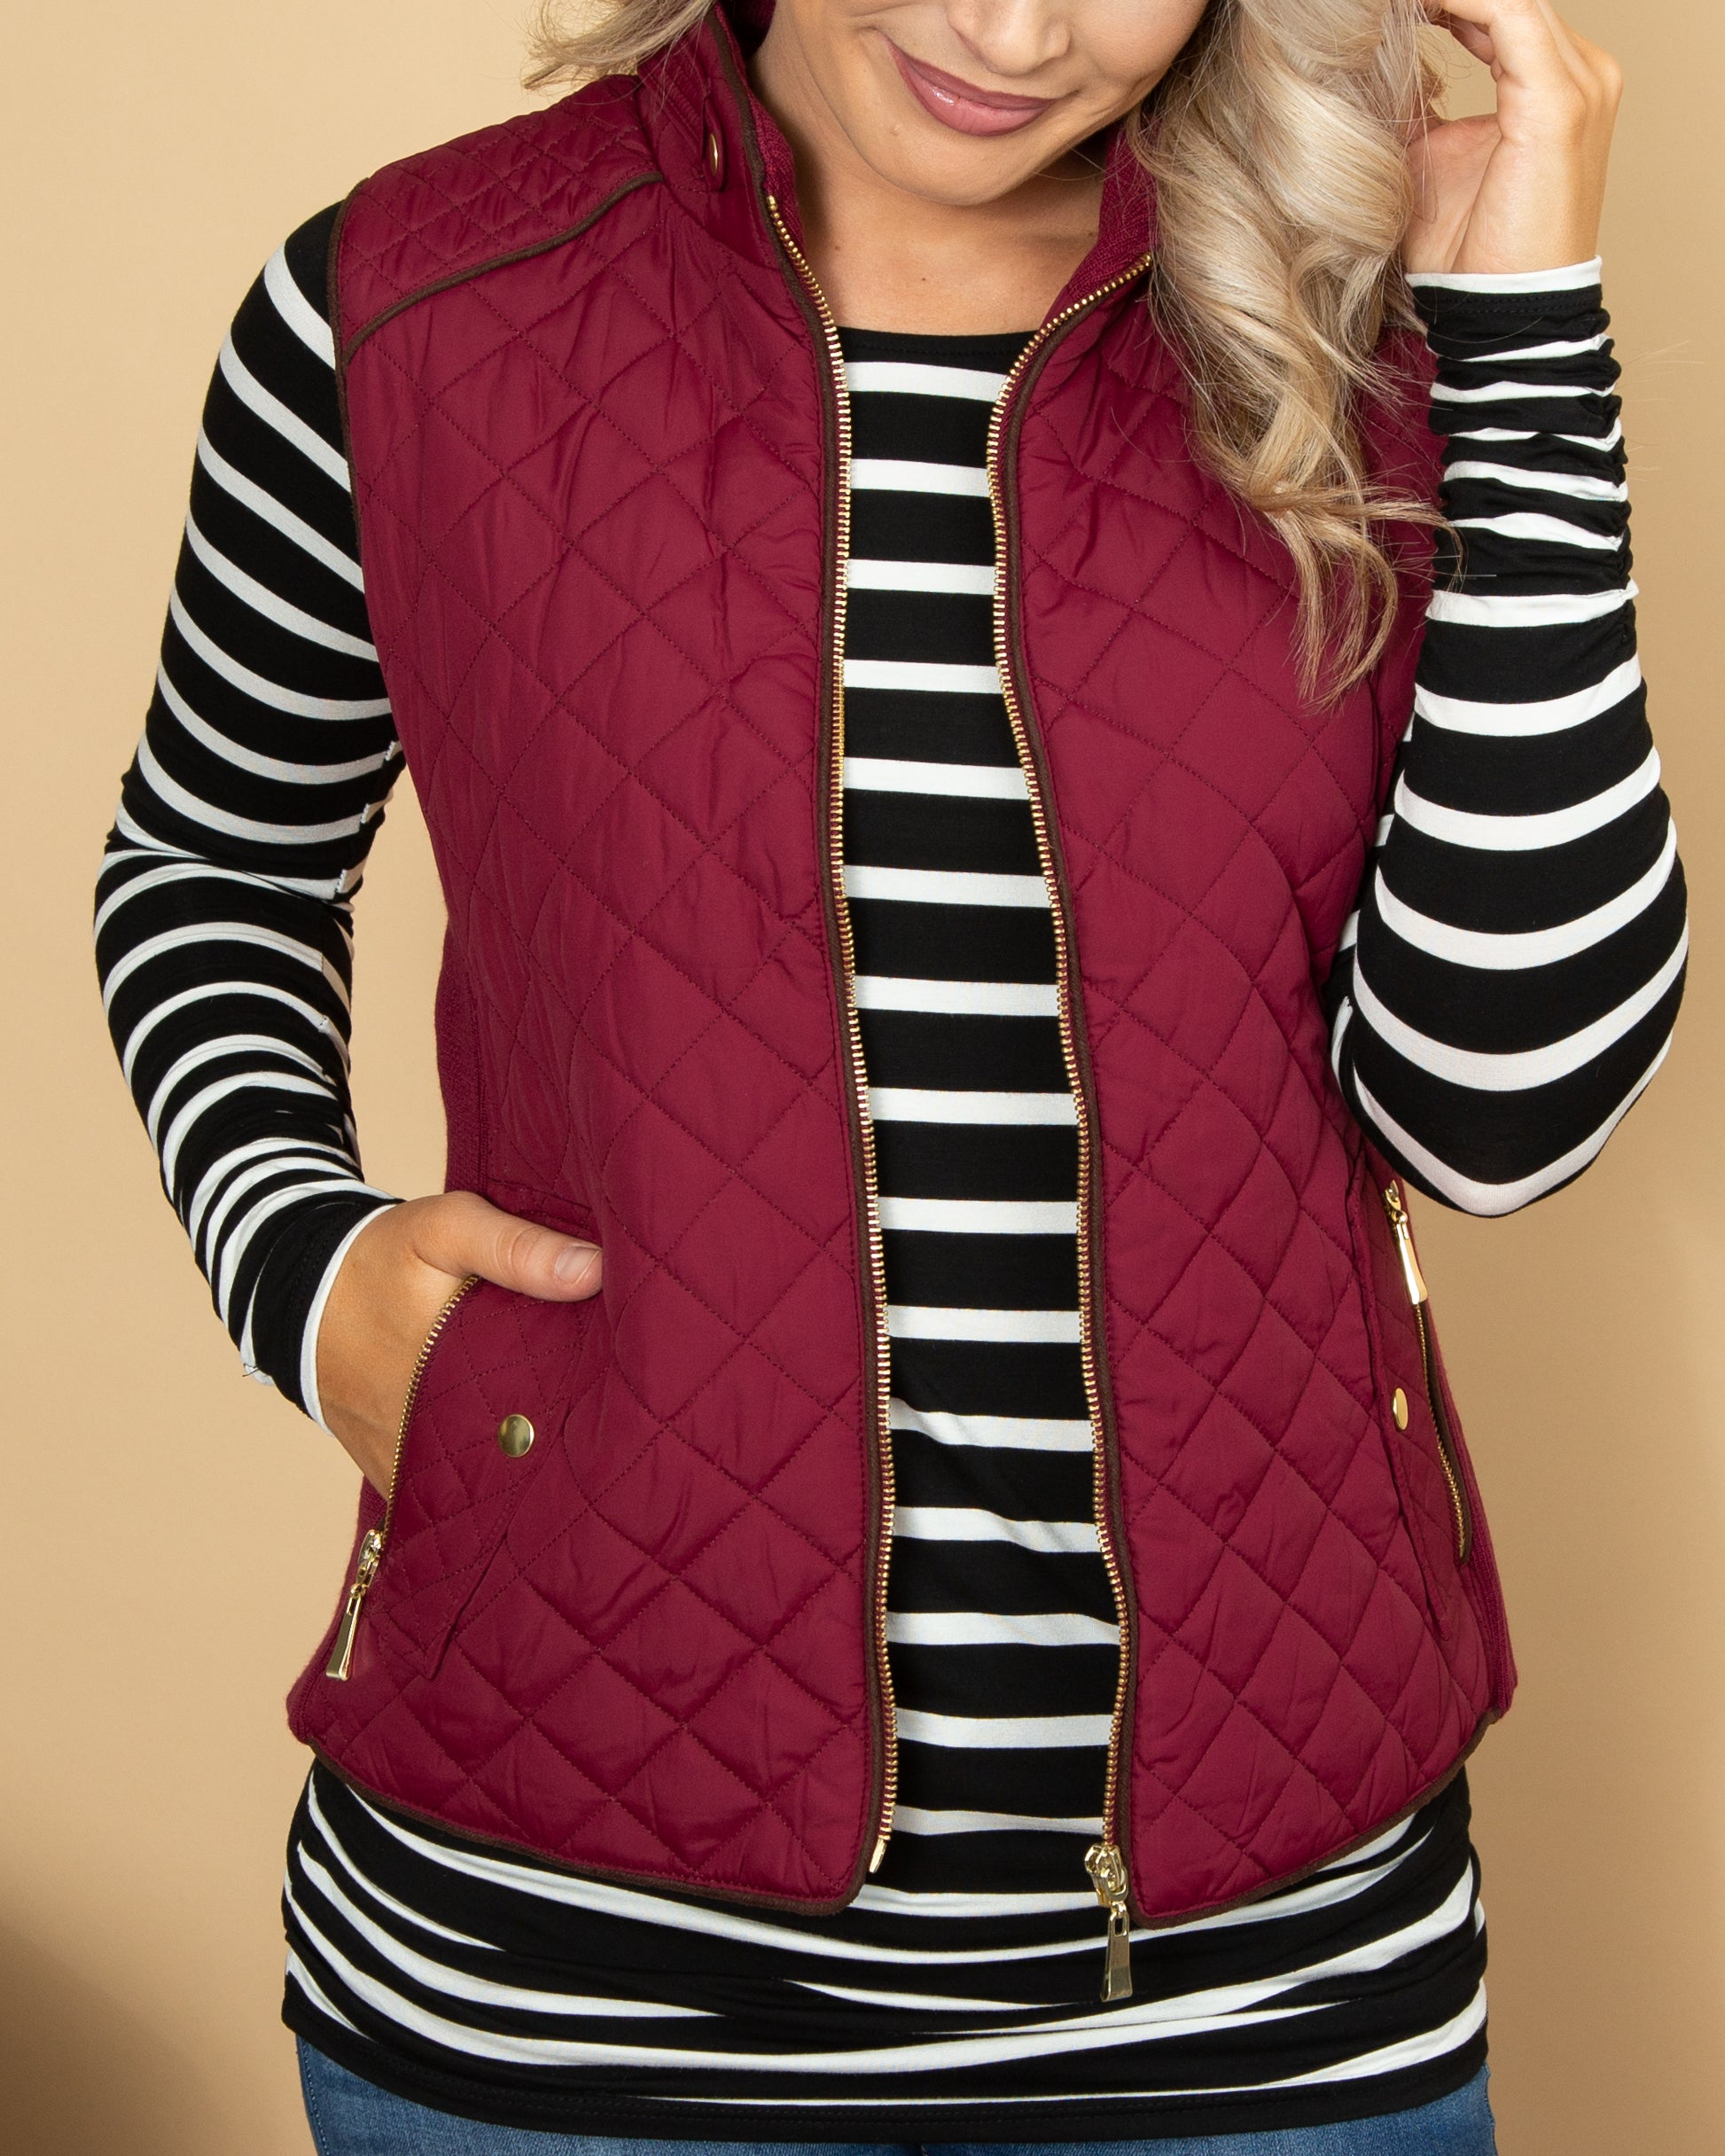 Vice Versa Quilted Vest - Burgundy